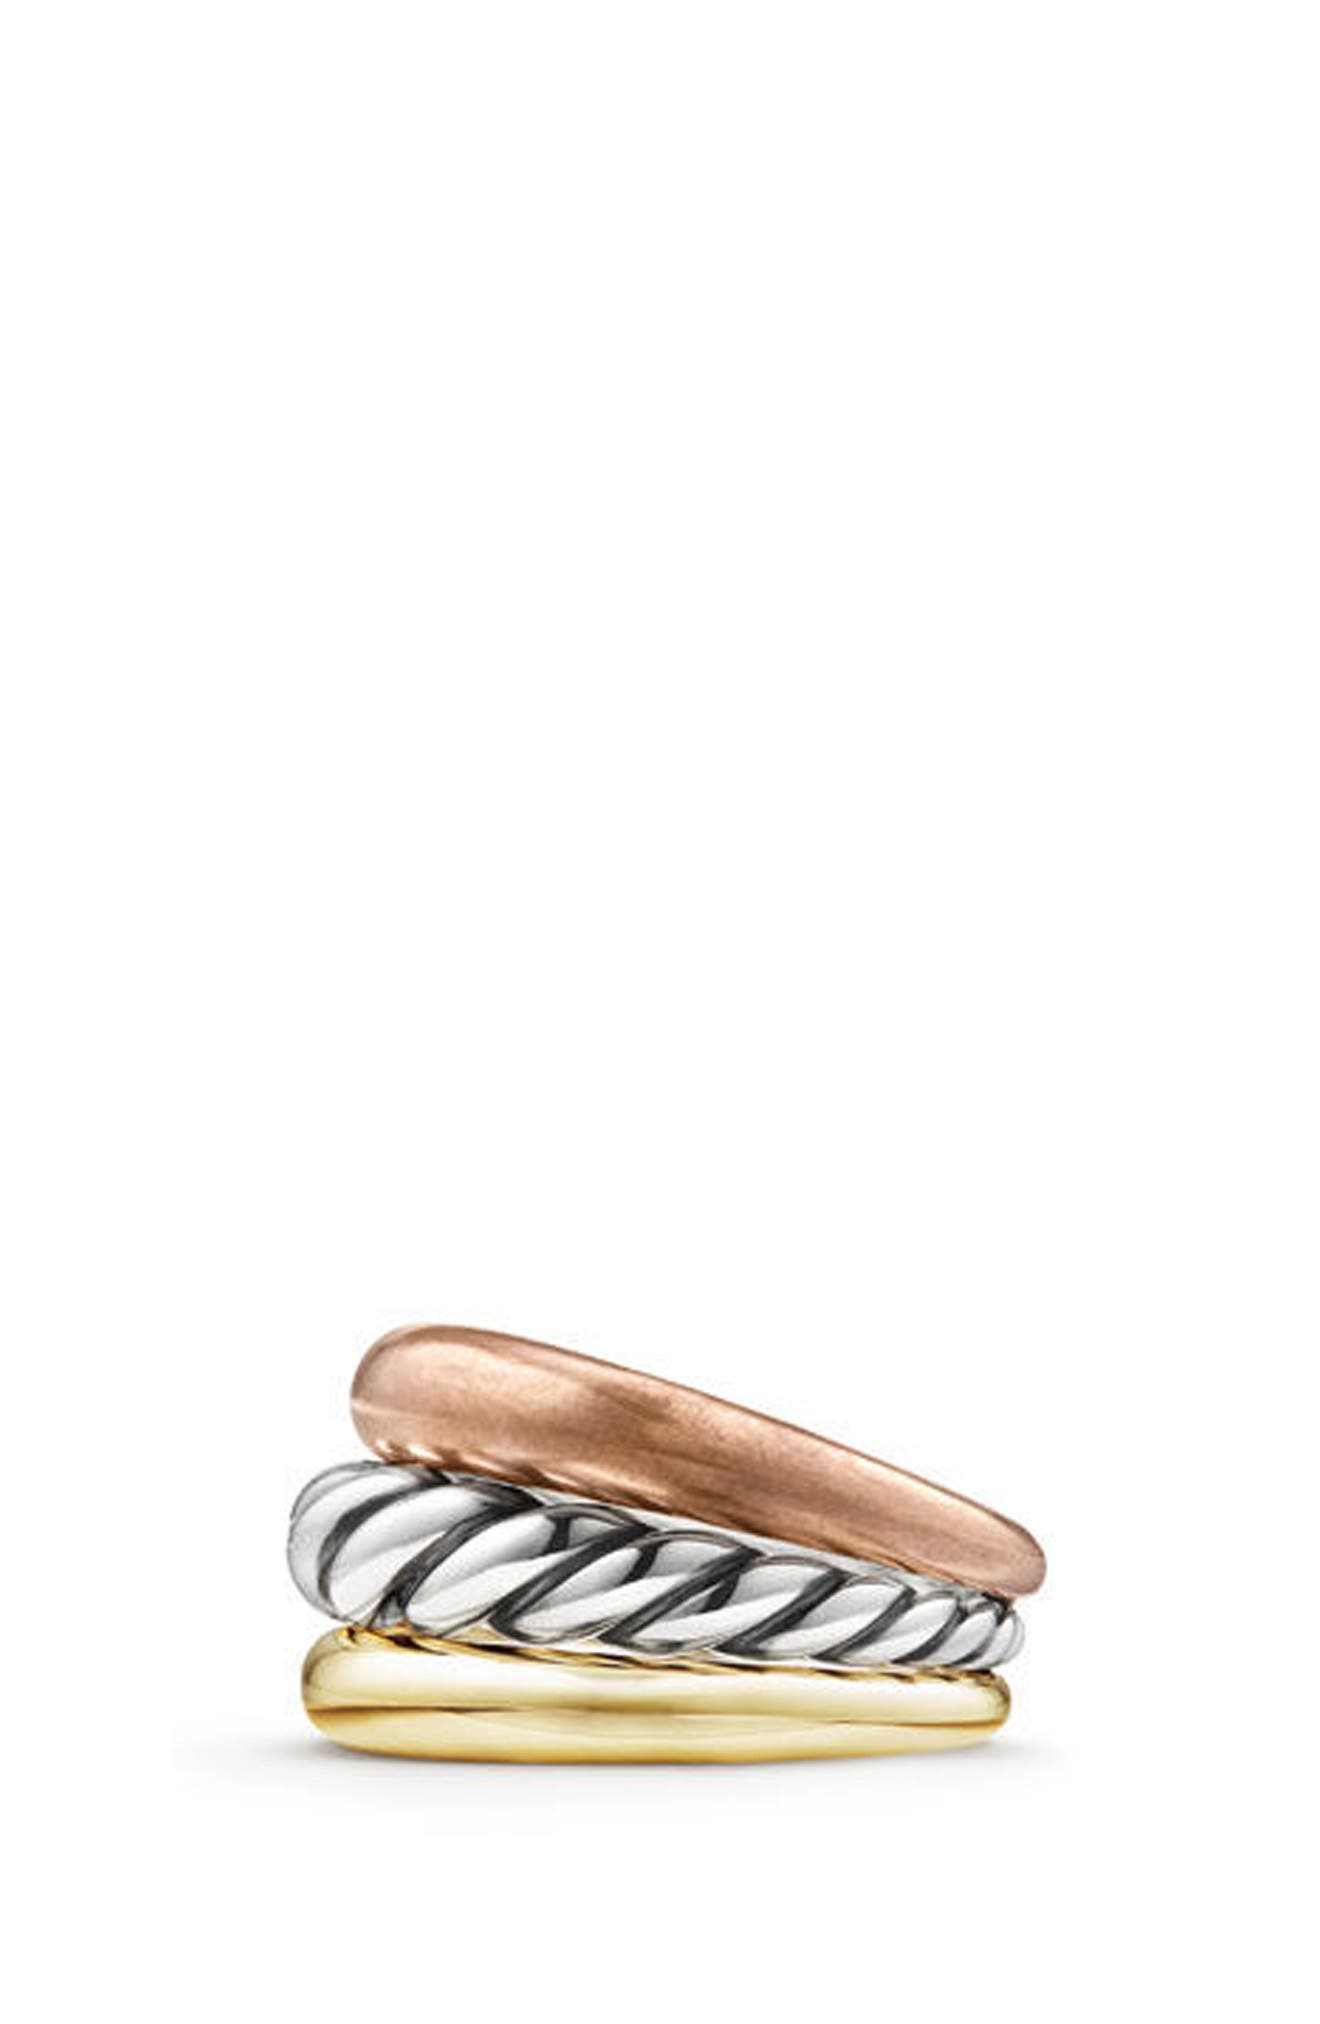 Pure Form Mixed Metal Three-Row Ring with Bronze, Silver & Brass,                             Alternate thumbnail 2, color,                             Silver